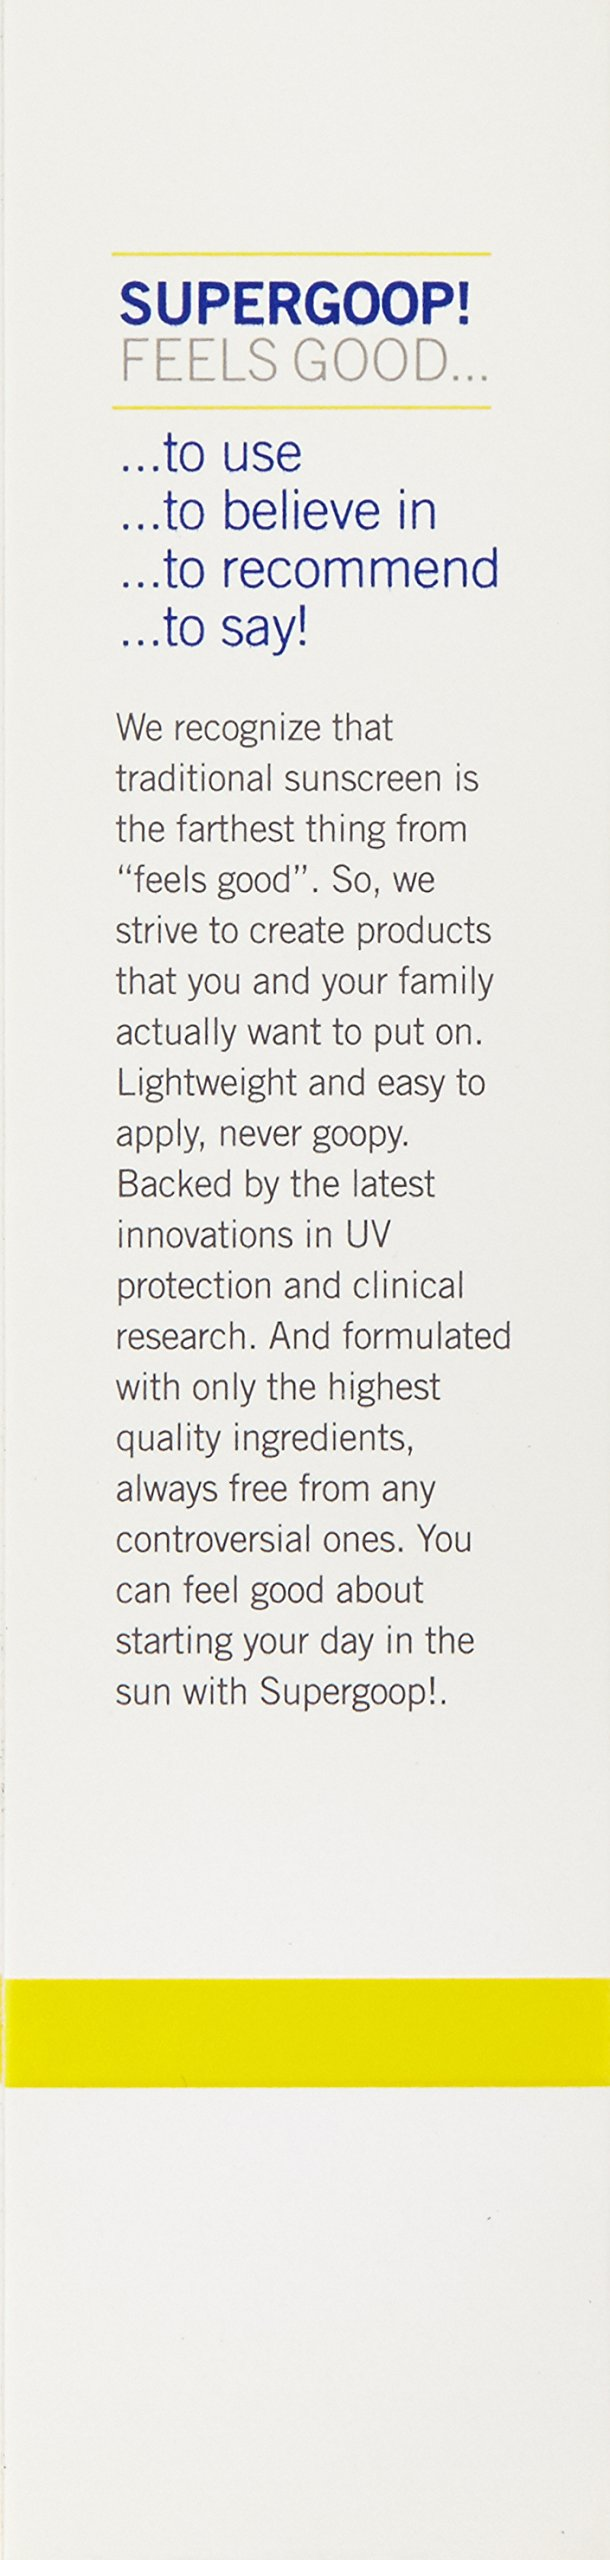 Supergoop! Everyday Sunscreen with Cellular Response Technology SPF 50, 2.4 fl. Oz. by Supergoop! (Image #4)